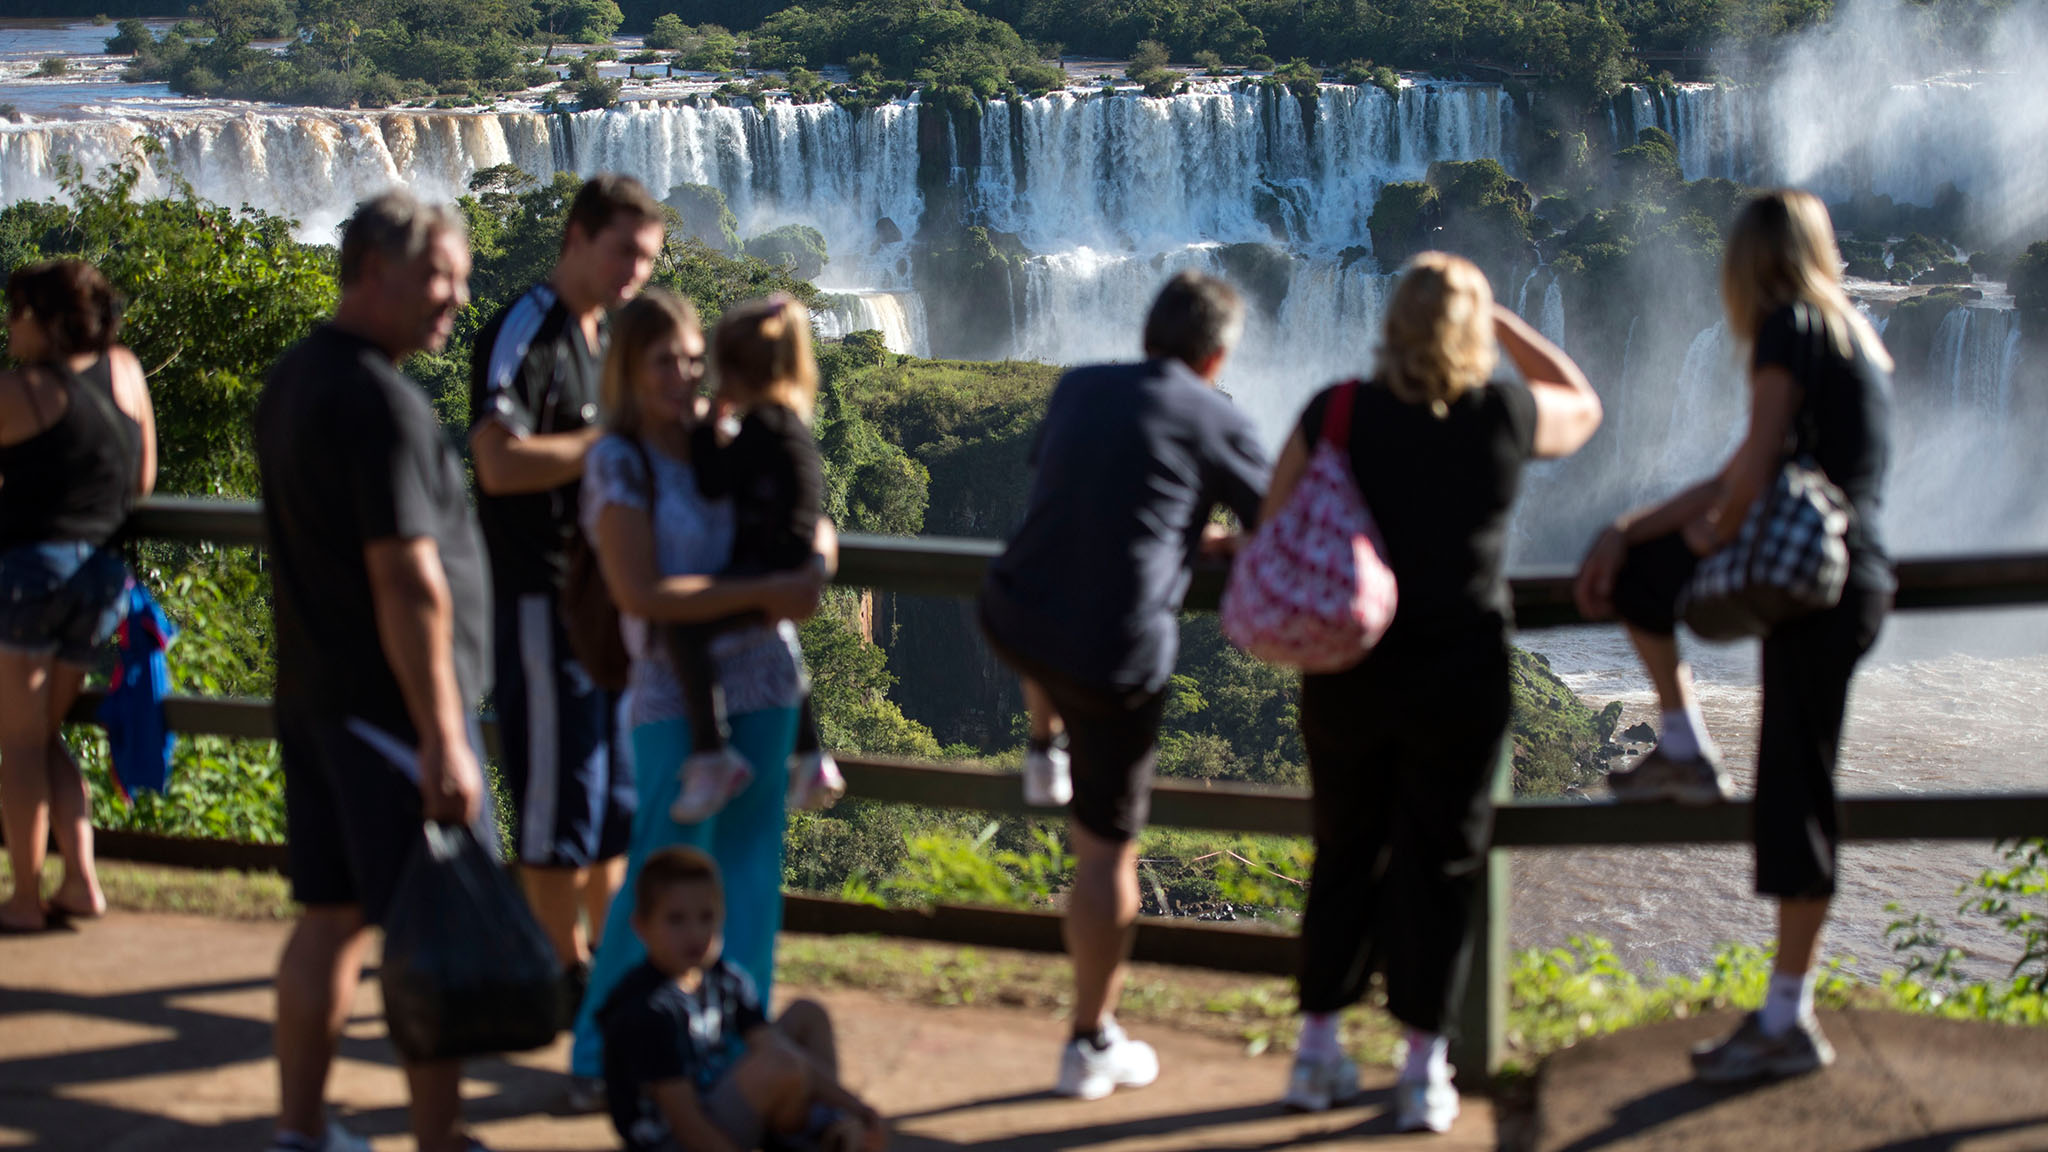 2013: Foz Do Iguacu, Brazil